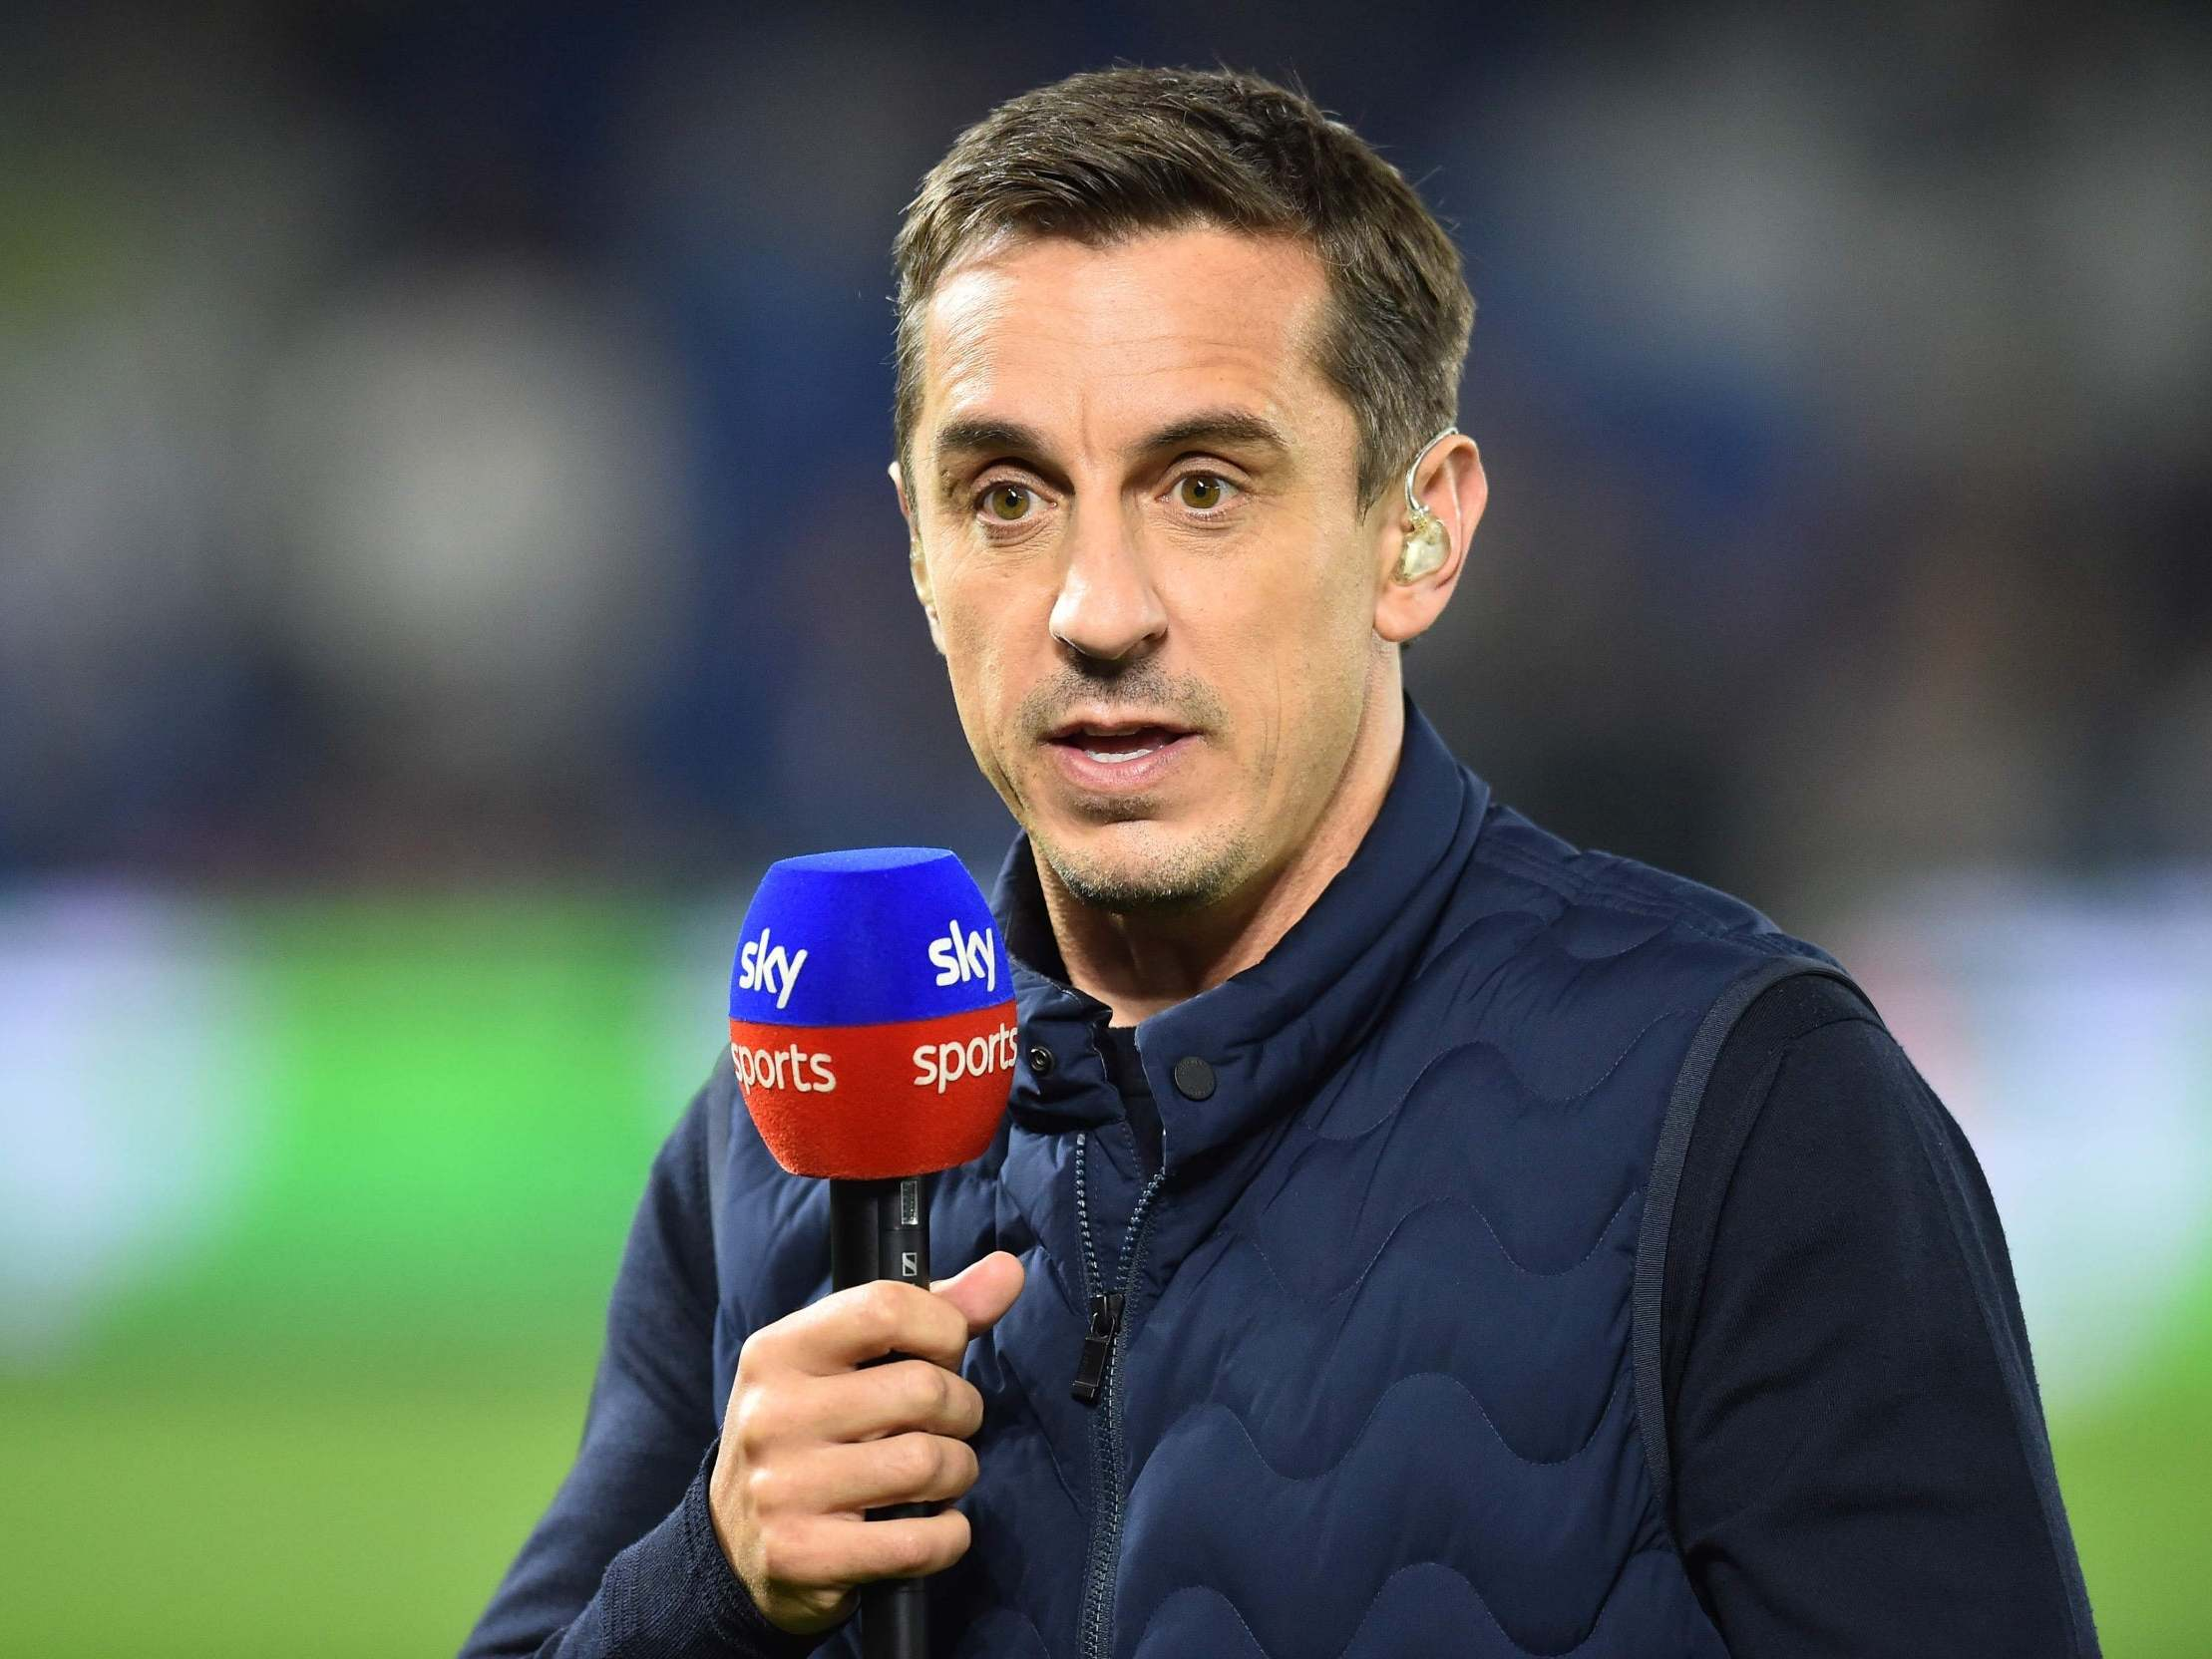 Gary Neville - latest news, breaking stories and comment - The ...